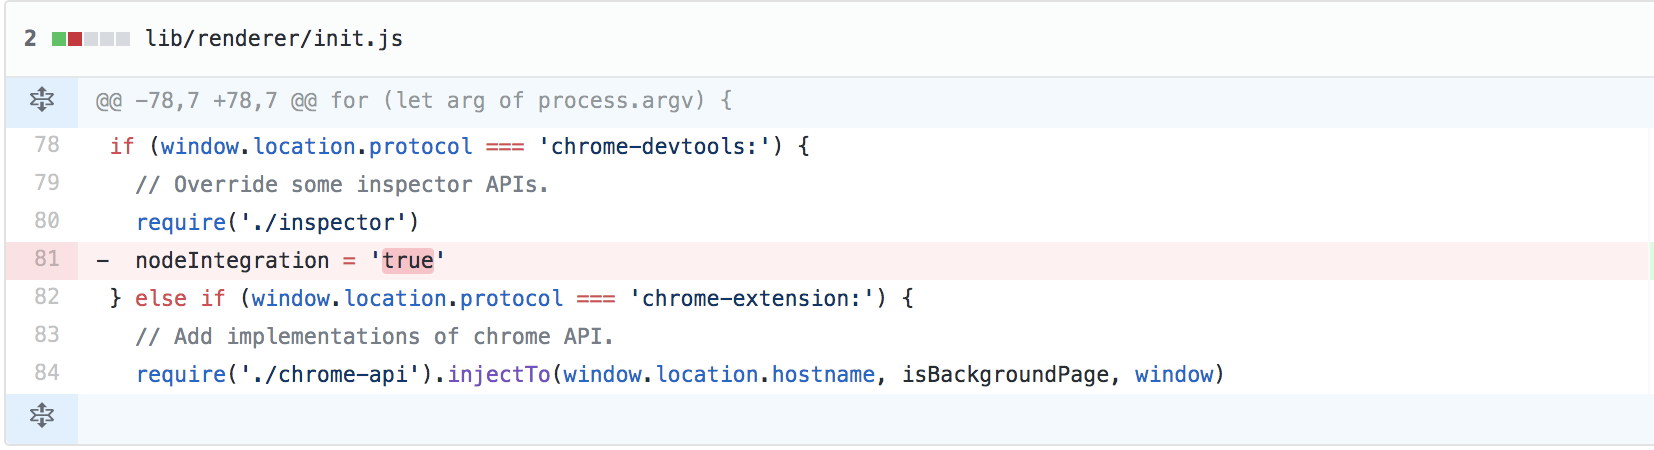 Chrome DevTools in Electron, prior to 1.6.8